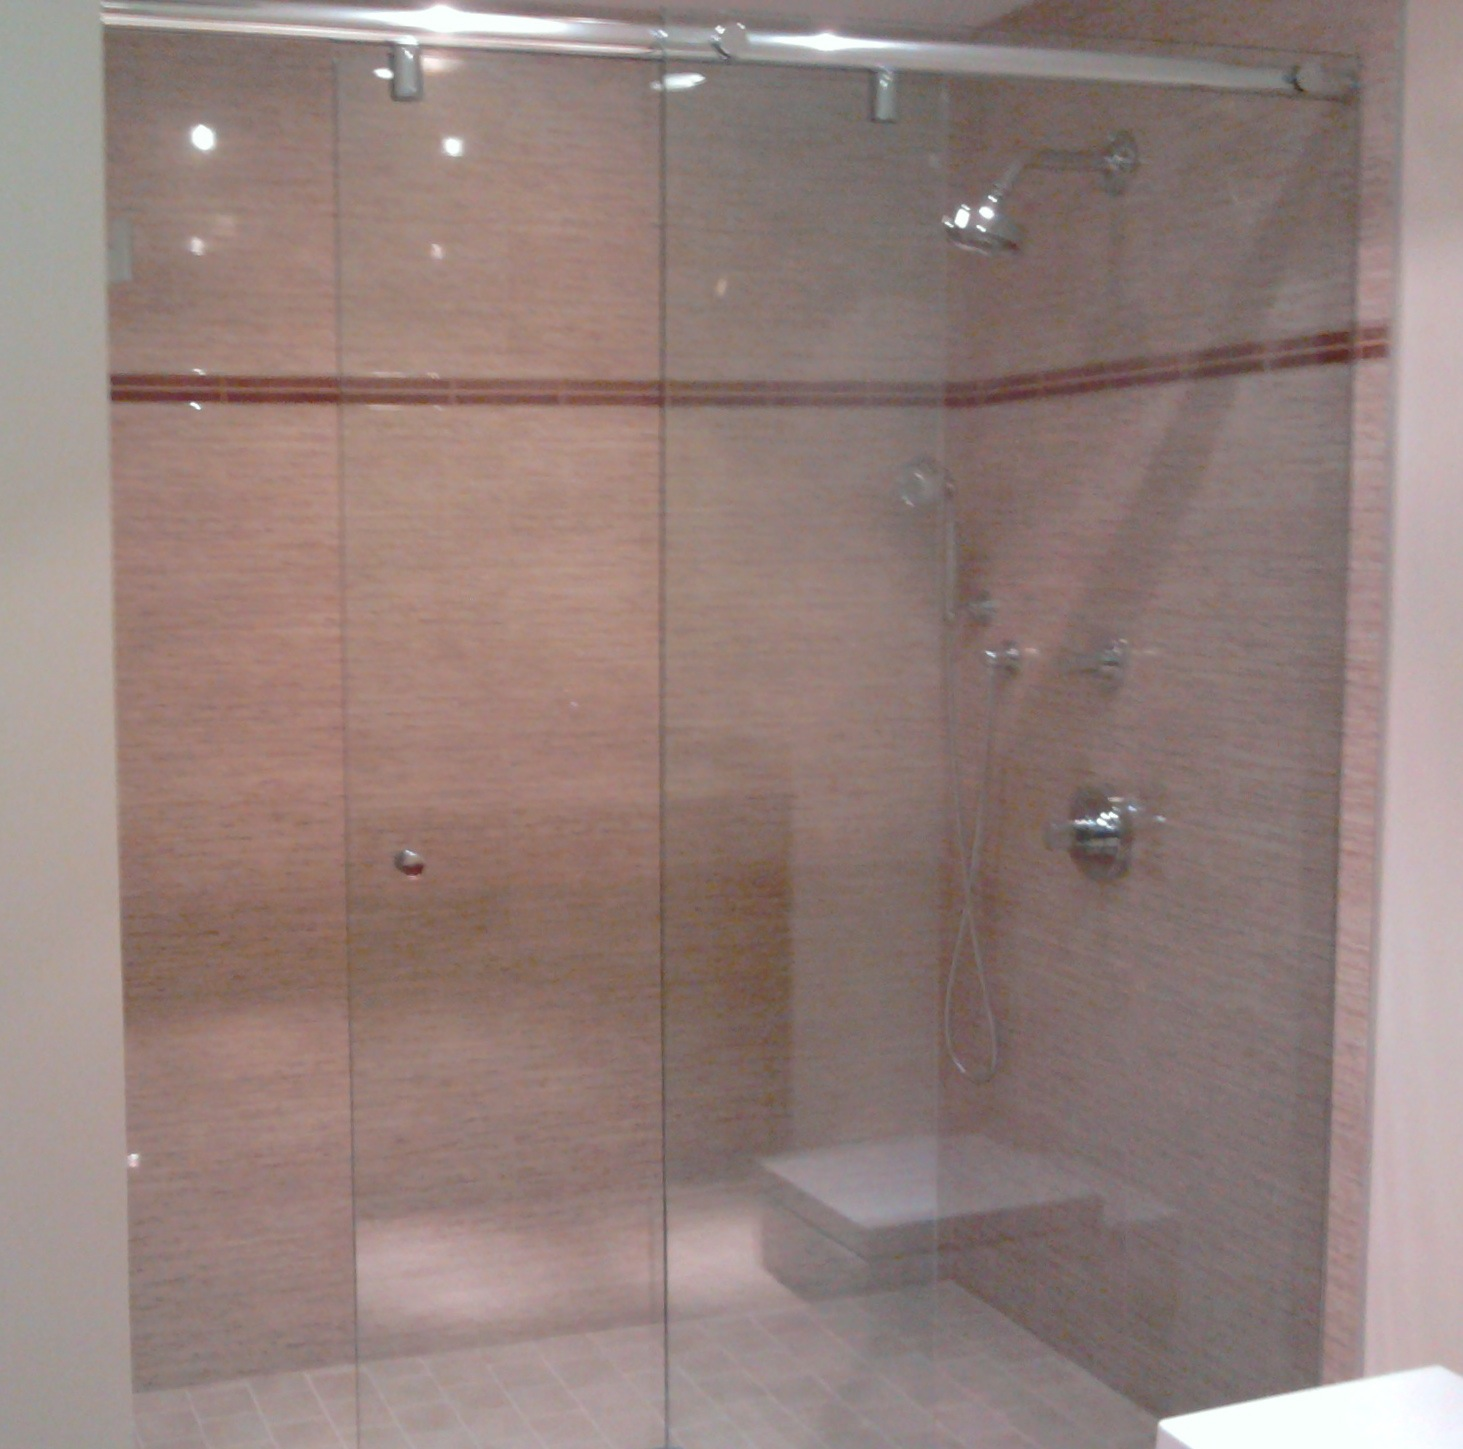 Hydroslide Sliding Shower Door That We Installed For A Customer Last